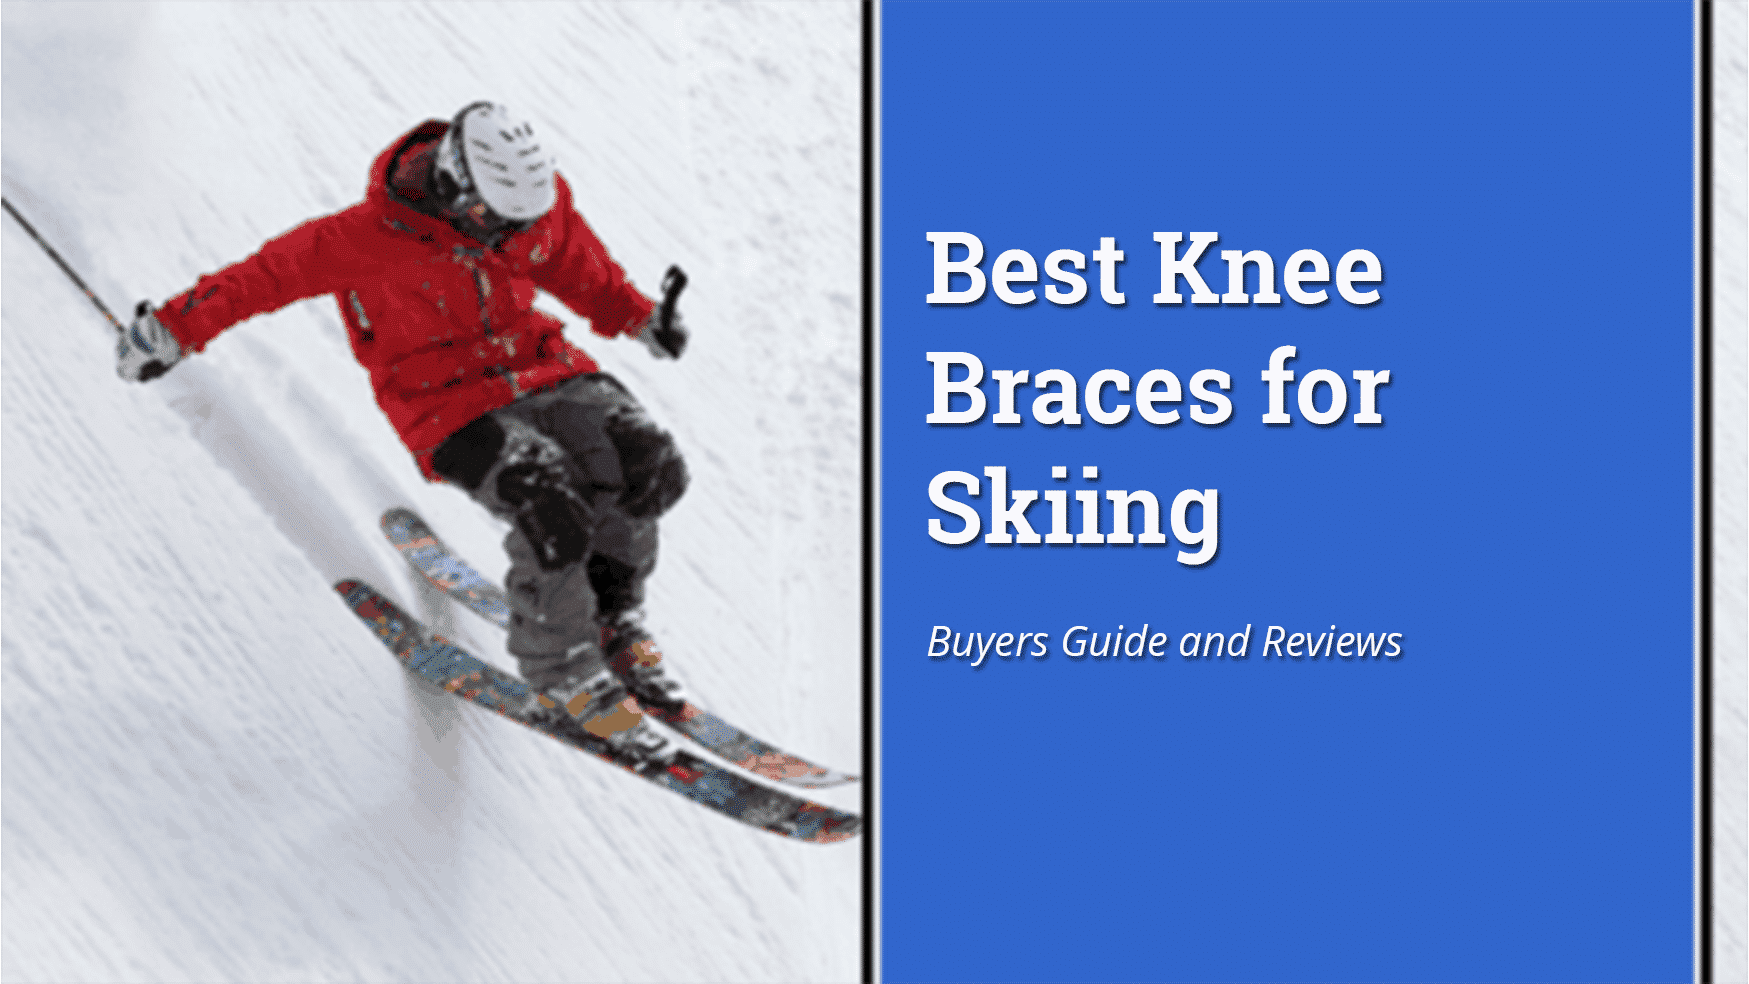 Best-knee-brace-for-skiing